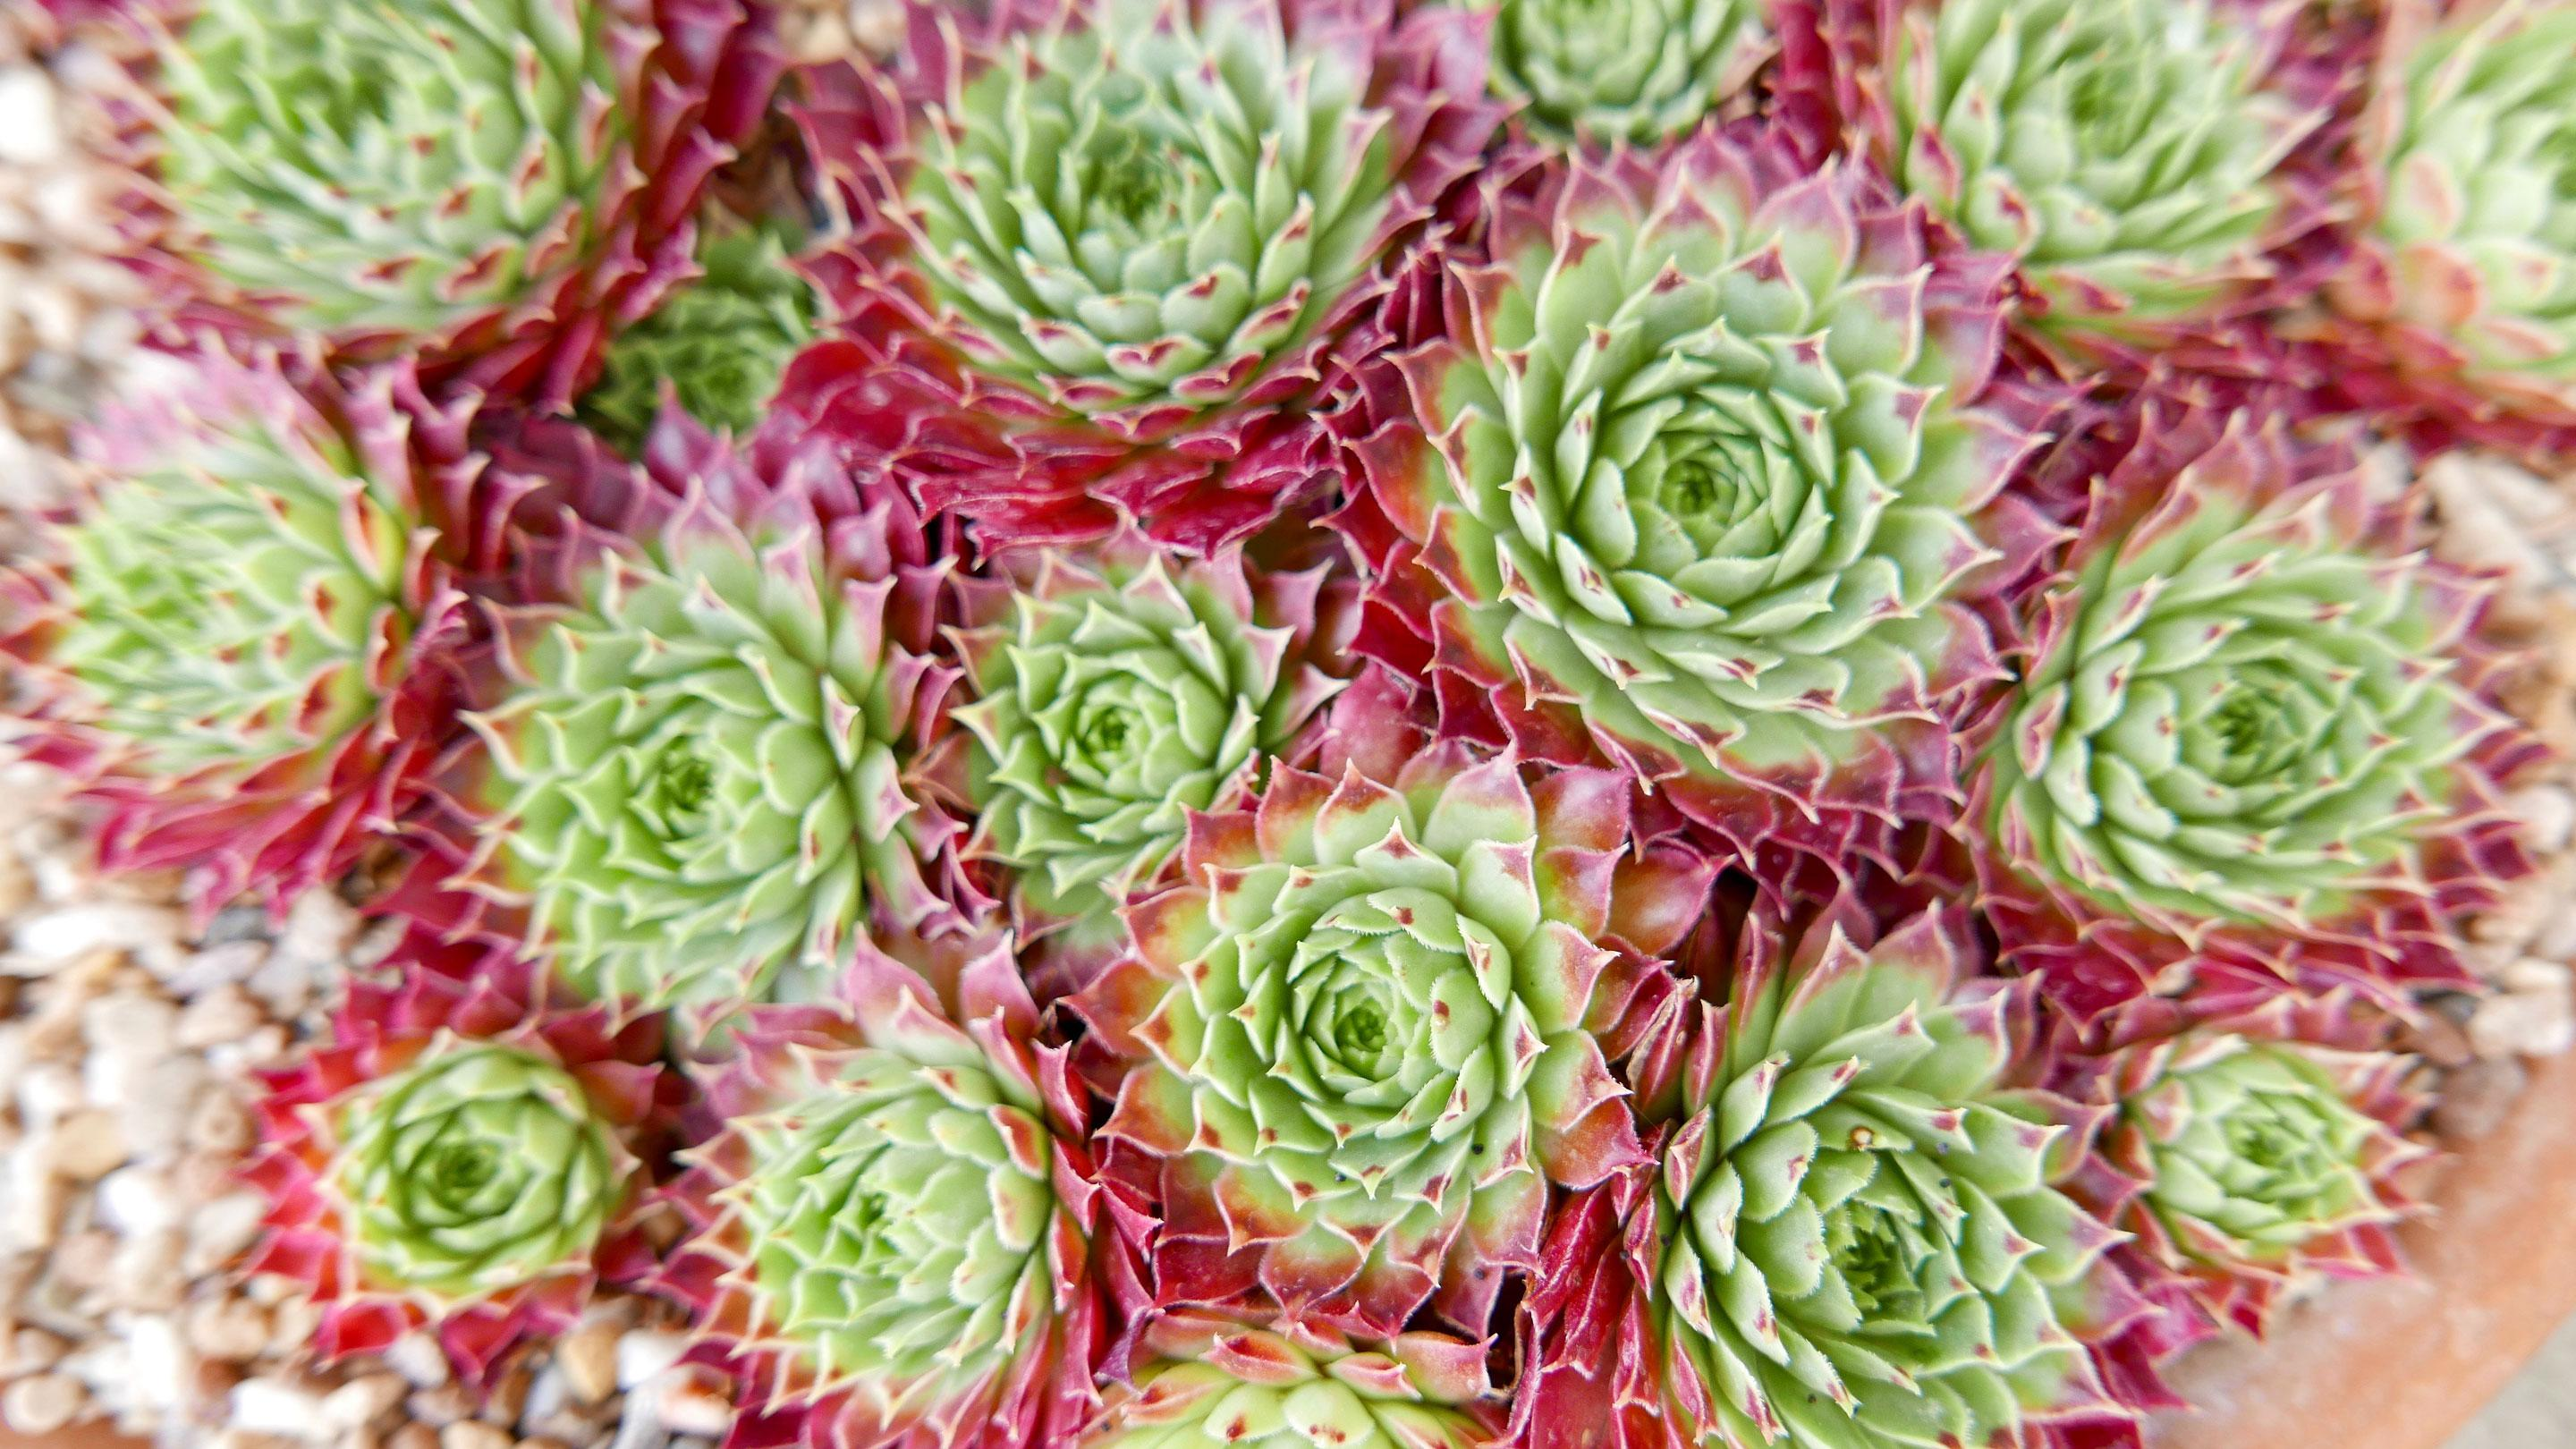 Many varieties of alpine plants are on display in the Davies Alpine House